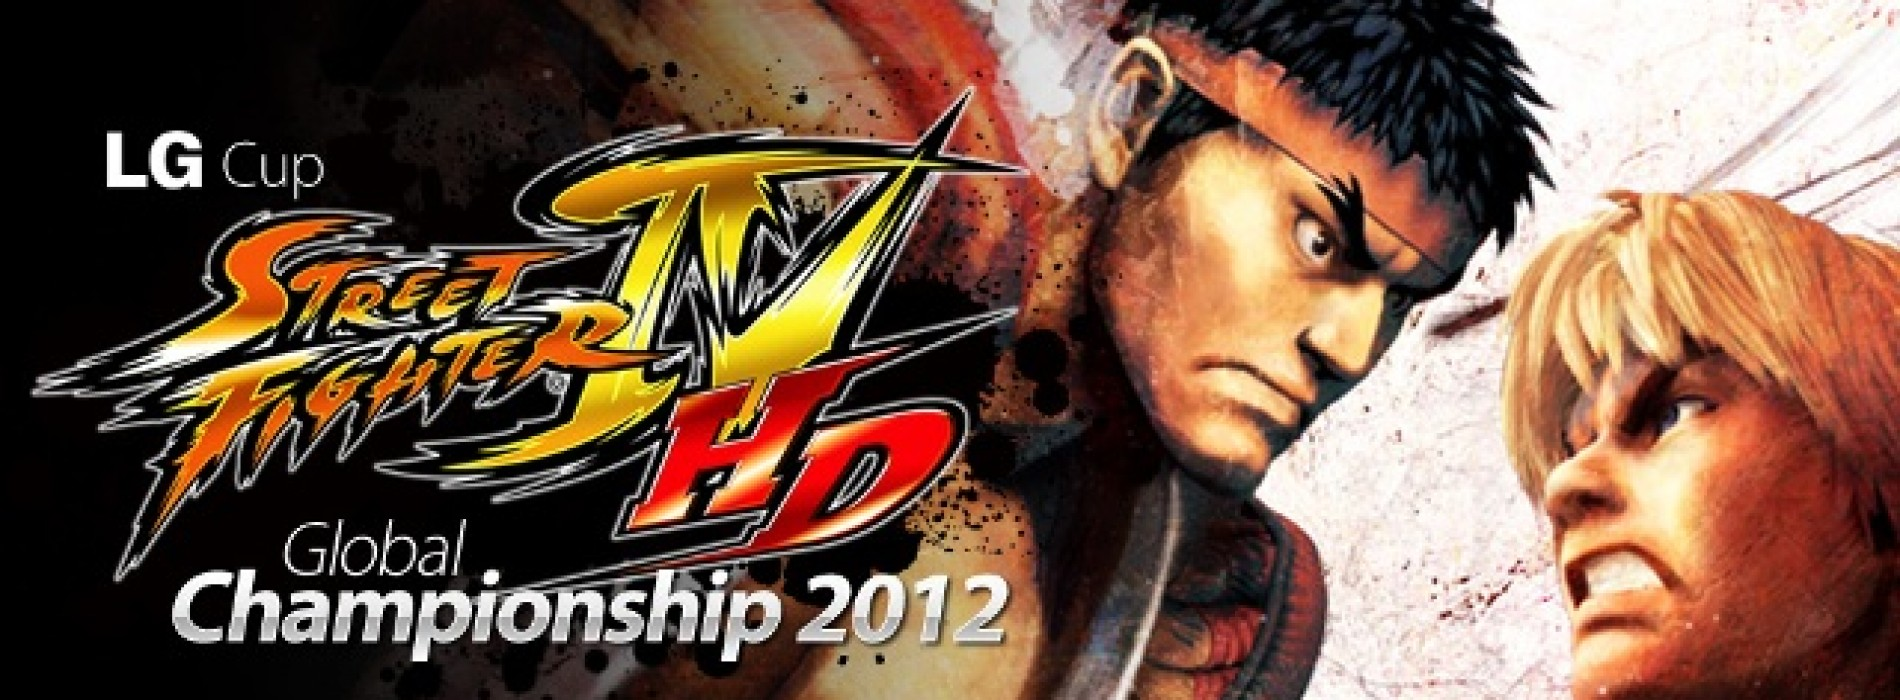 LG and Capcom Hosting an Android based Street Fighter IV Tournament – 1/14